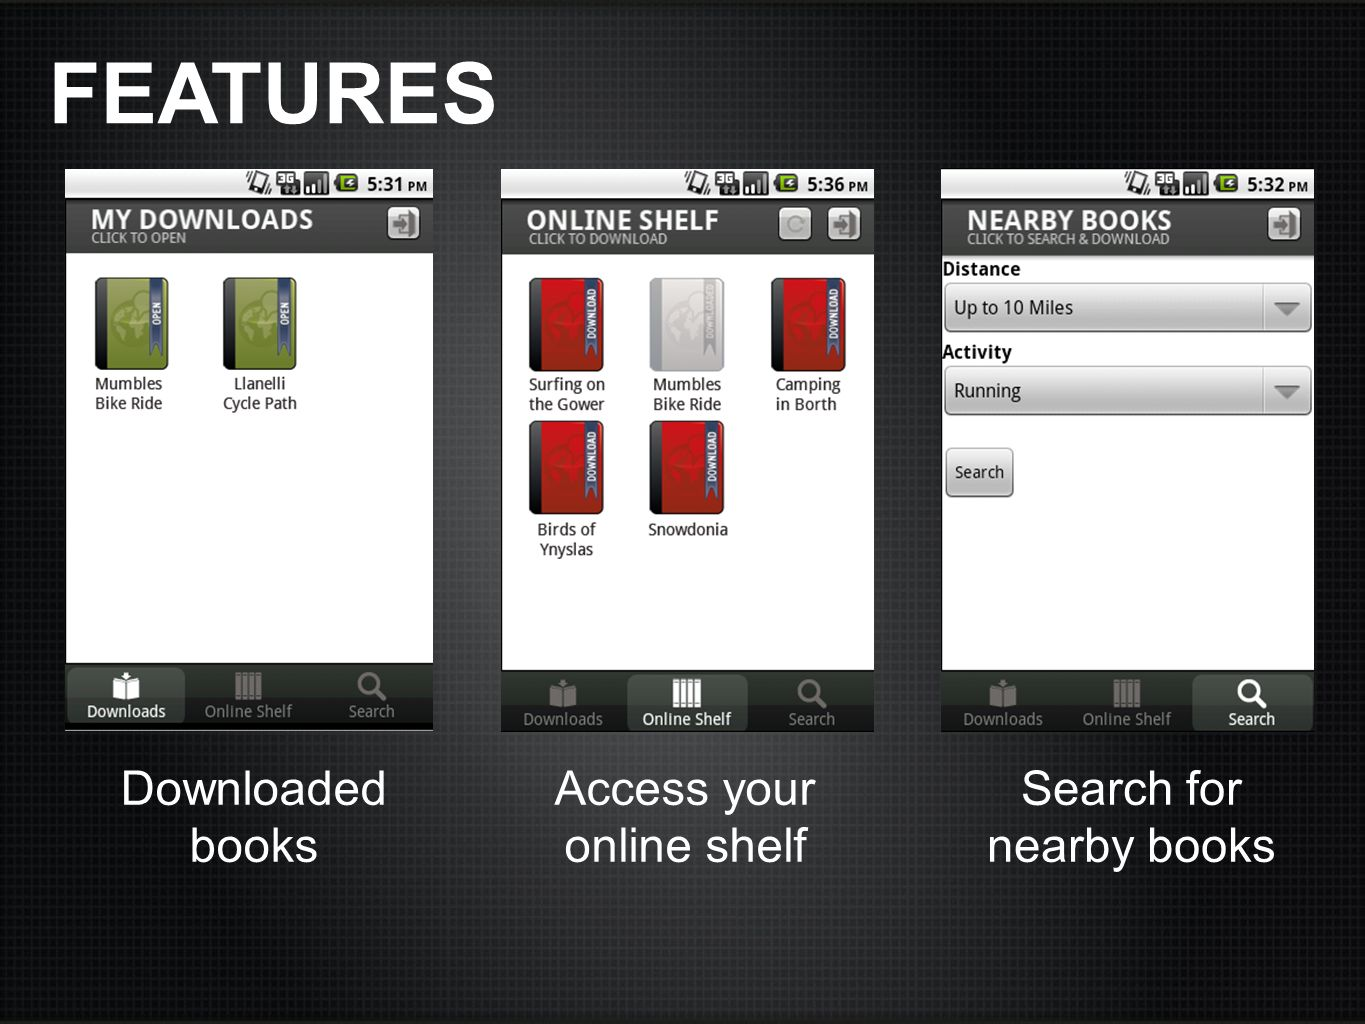 FEATURES Downloaded books Access your online shelf